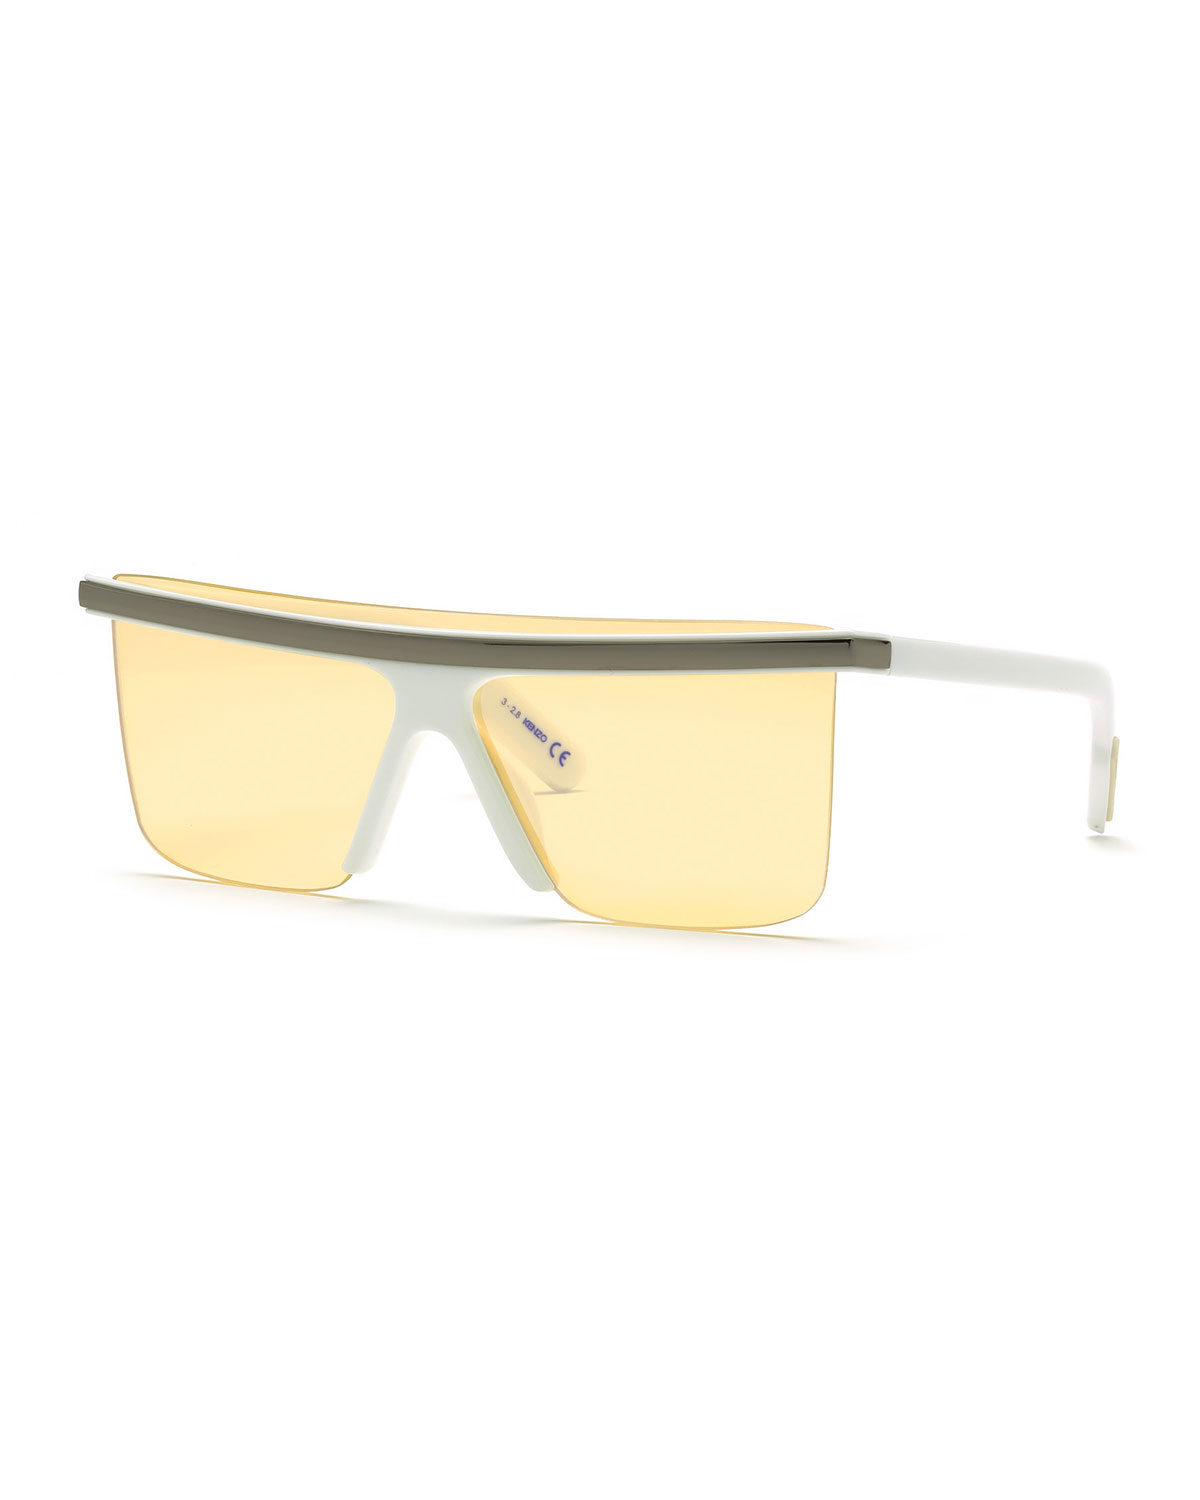 Kenzo Men's Flattop Shield Sunglasses